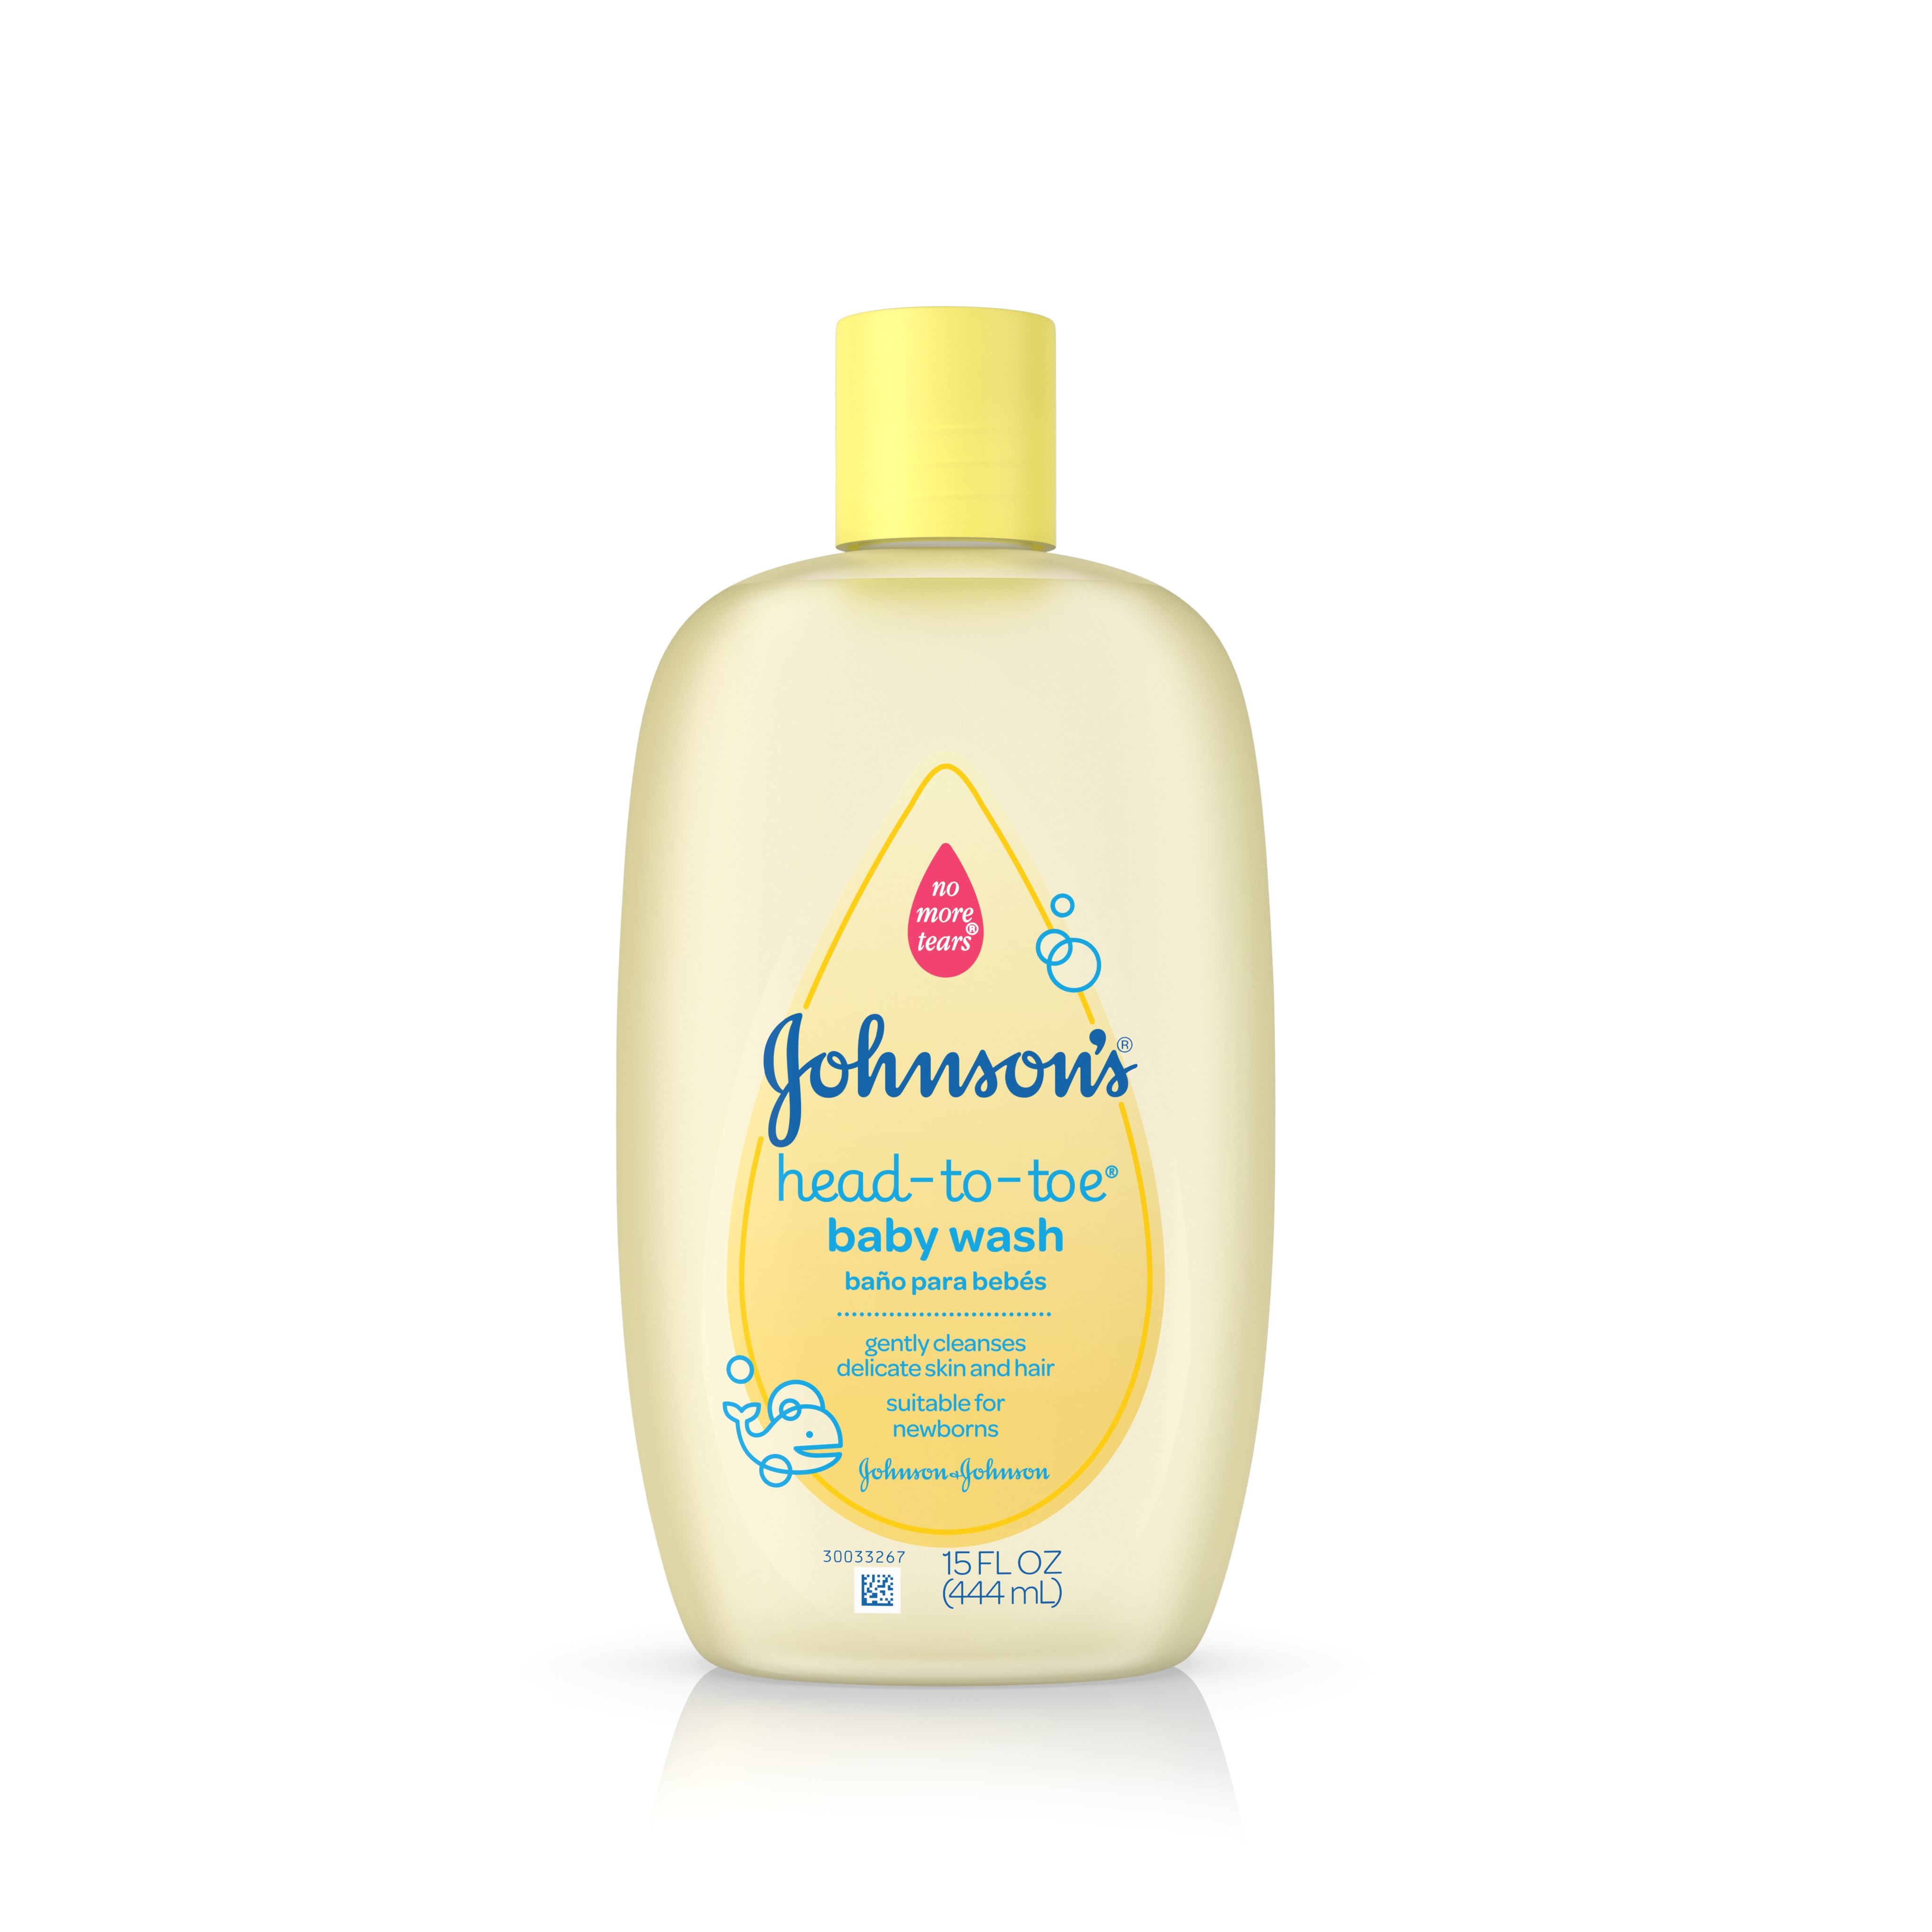 Johnson's Head-To-Toe Baby Wash, Gentle Cleanser, 15 Fl. Oz.